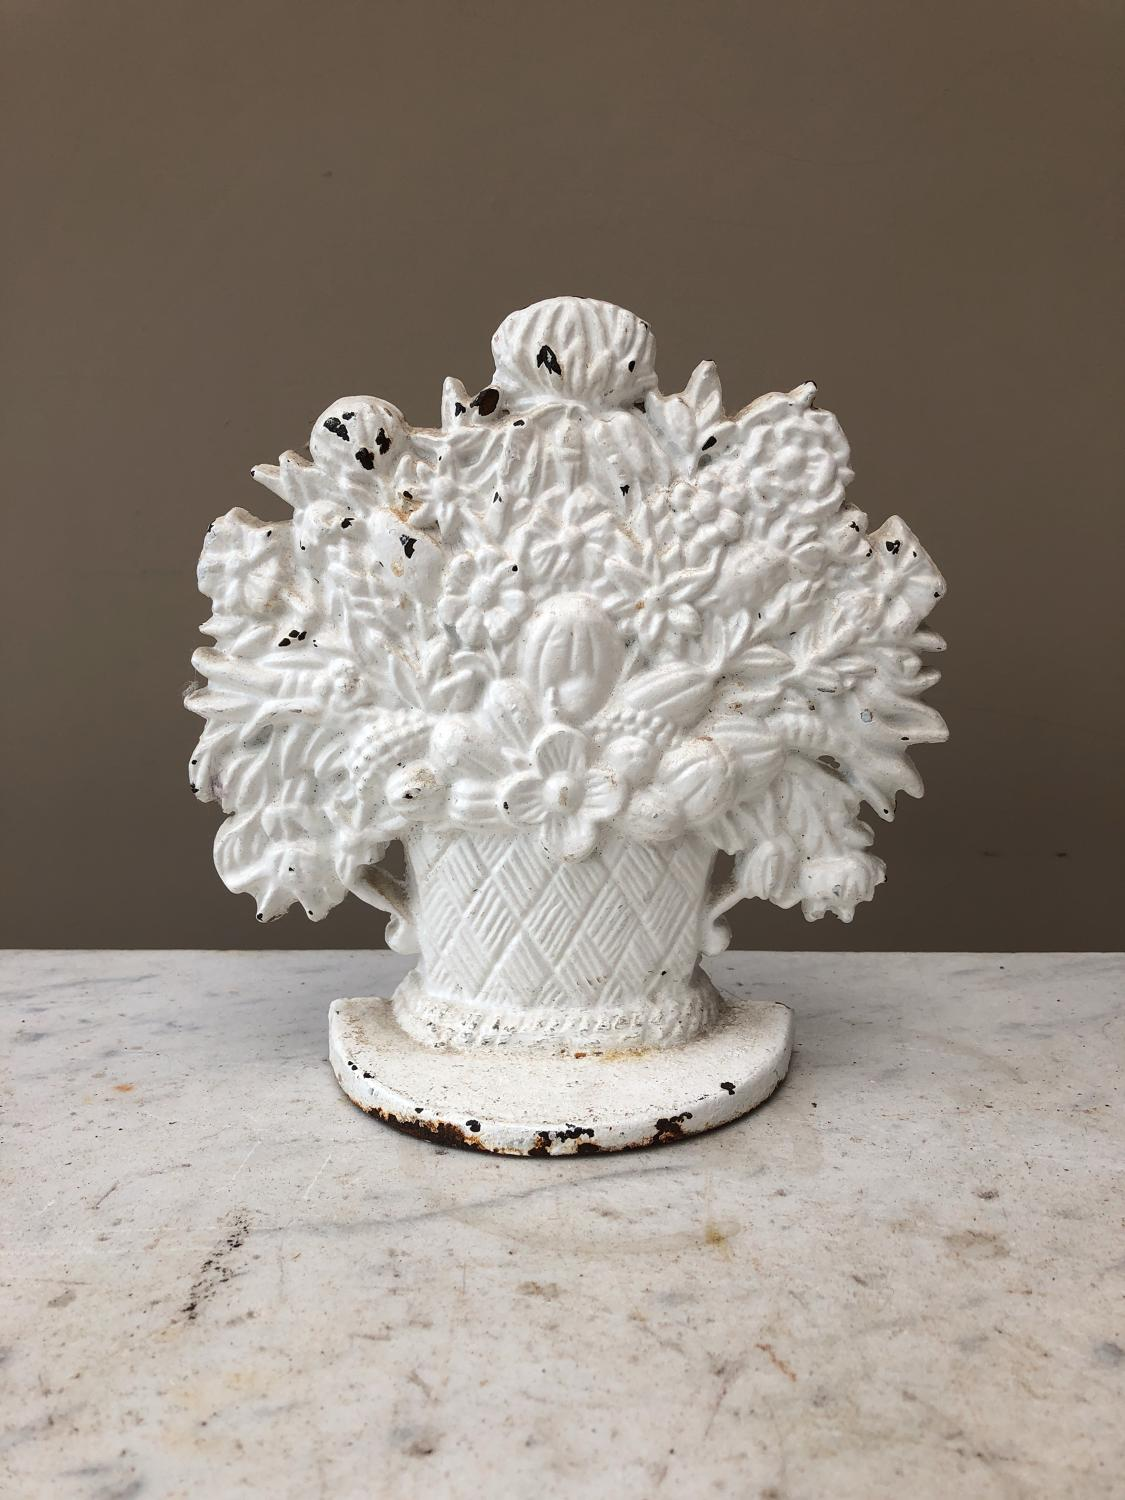 Early 20th Century Cast Iron Door Stop - Basket of Flowers